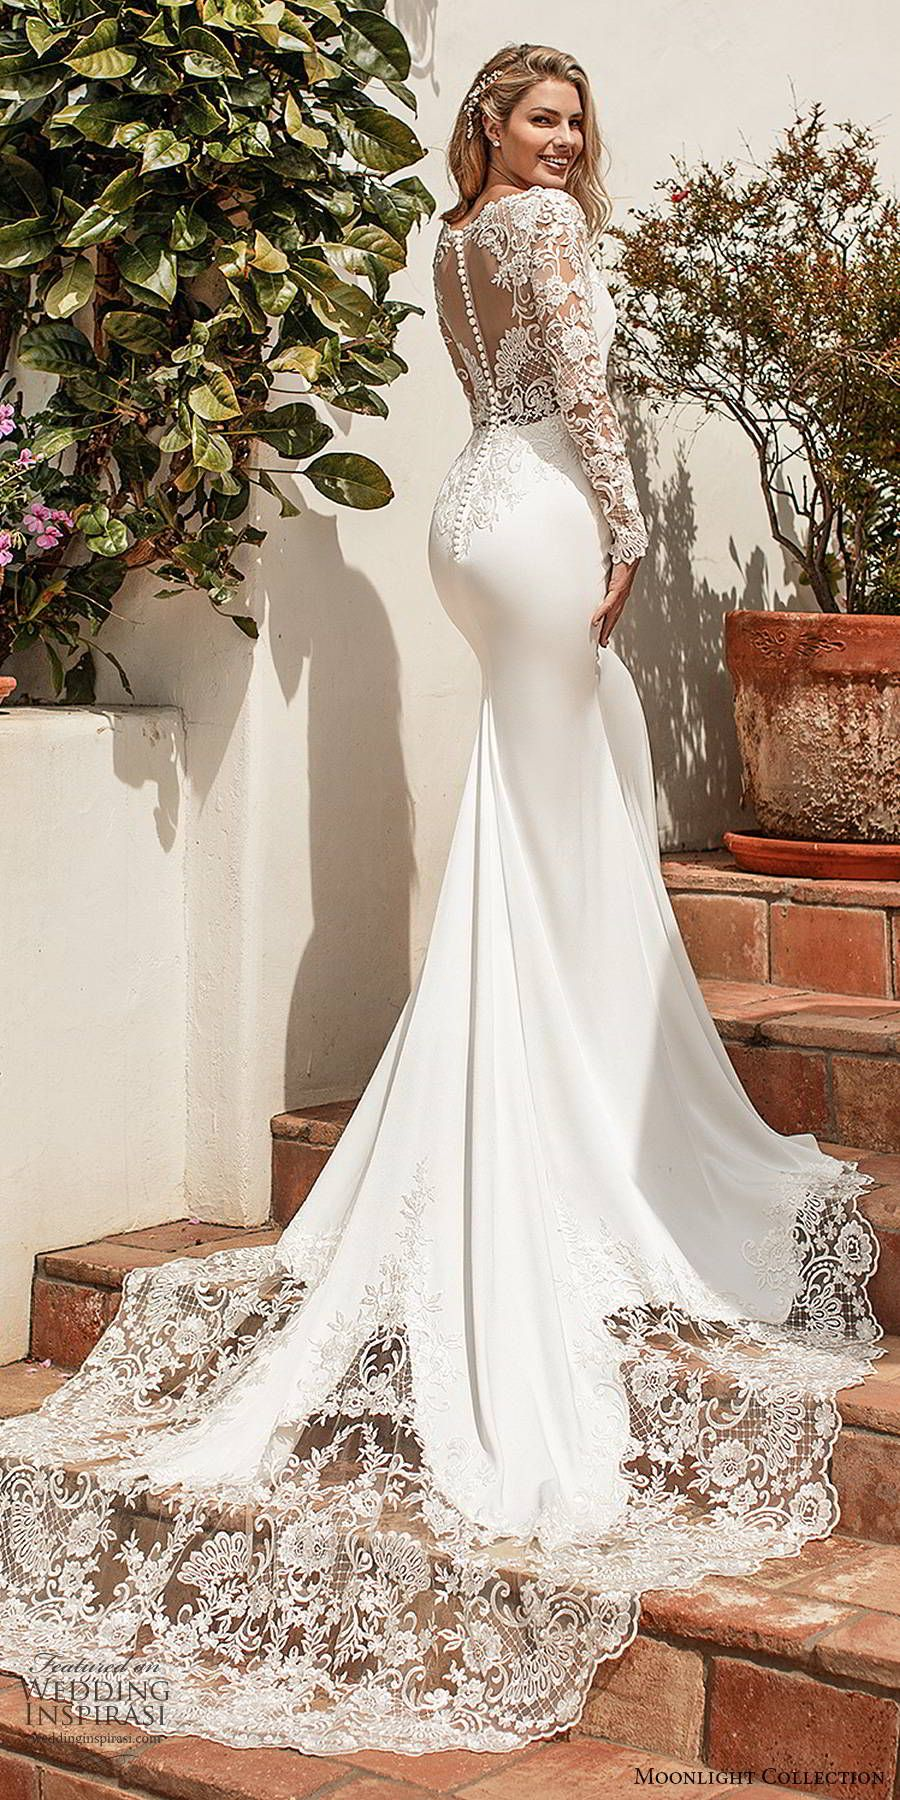 Moonlight Collection Spring 2020 Wedding Dresses Wedding Inspirasi Wedding Gowns Mermaid Wedding Dresses Mermaid Bling Dream Wedding Dresses [ 1800 x 900 Pixel ]